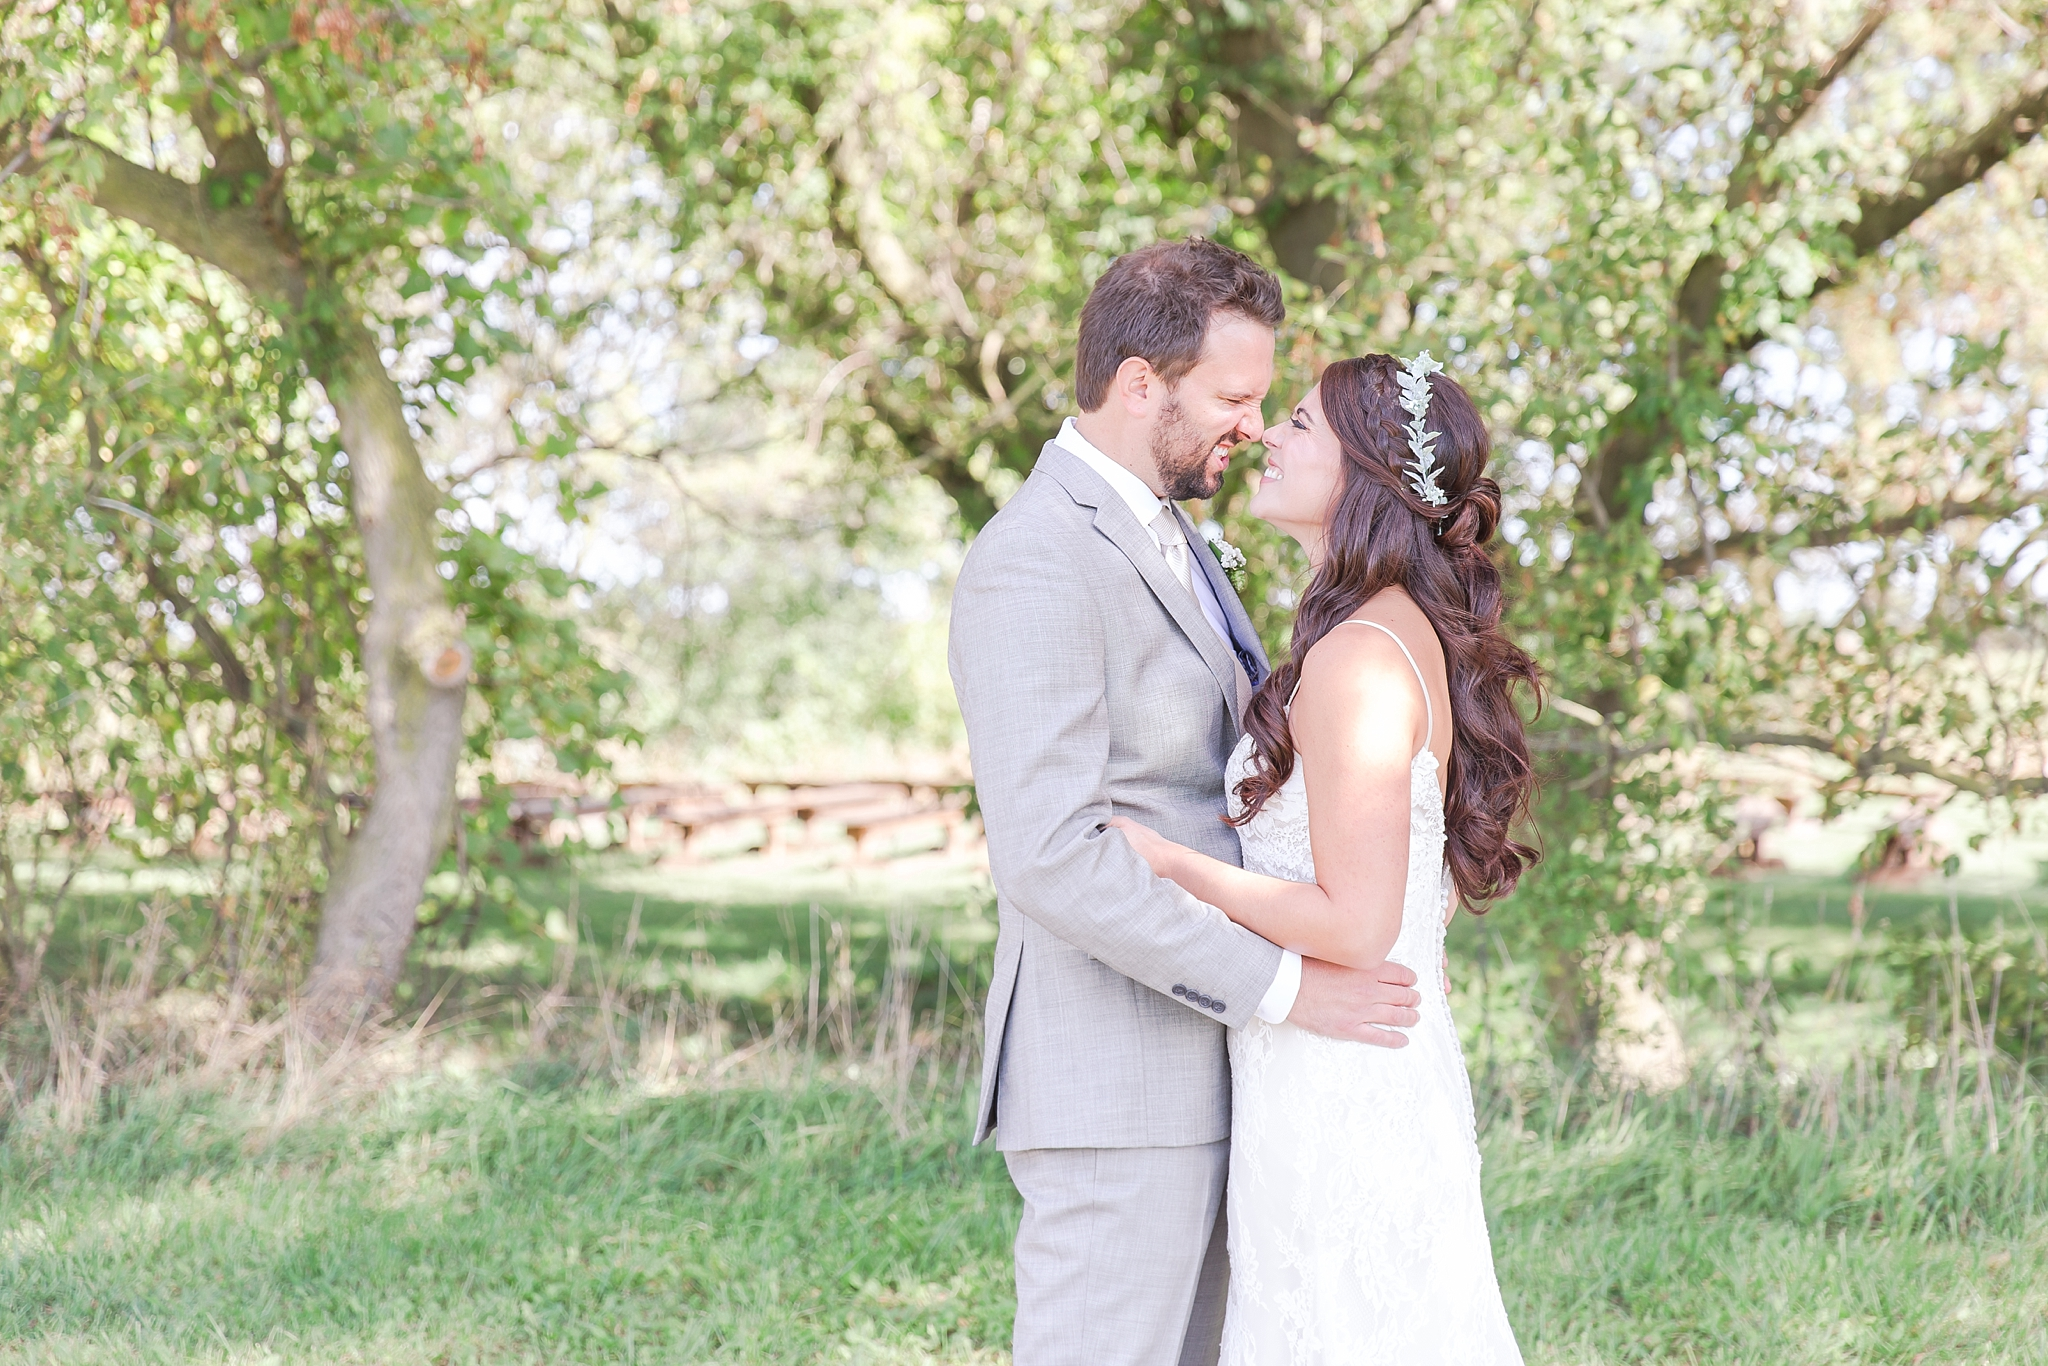 natural-rustic-wedding-photos-at-frutig-farms-the-valley-in-ann-arbor-michigan-by-courtney-carolyn-photography_0032.jpg